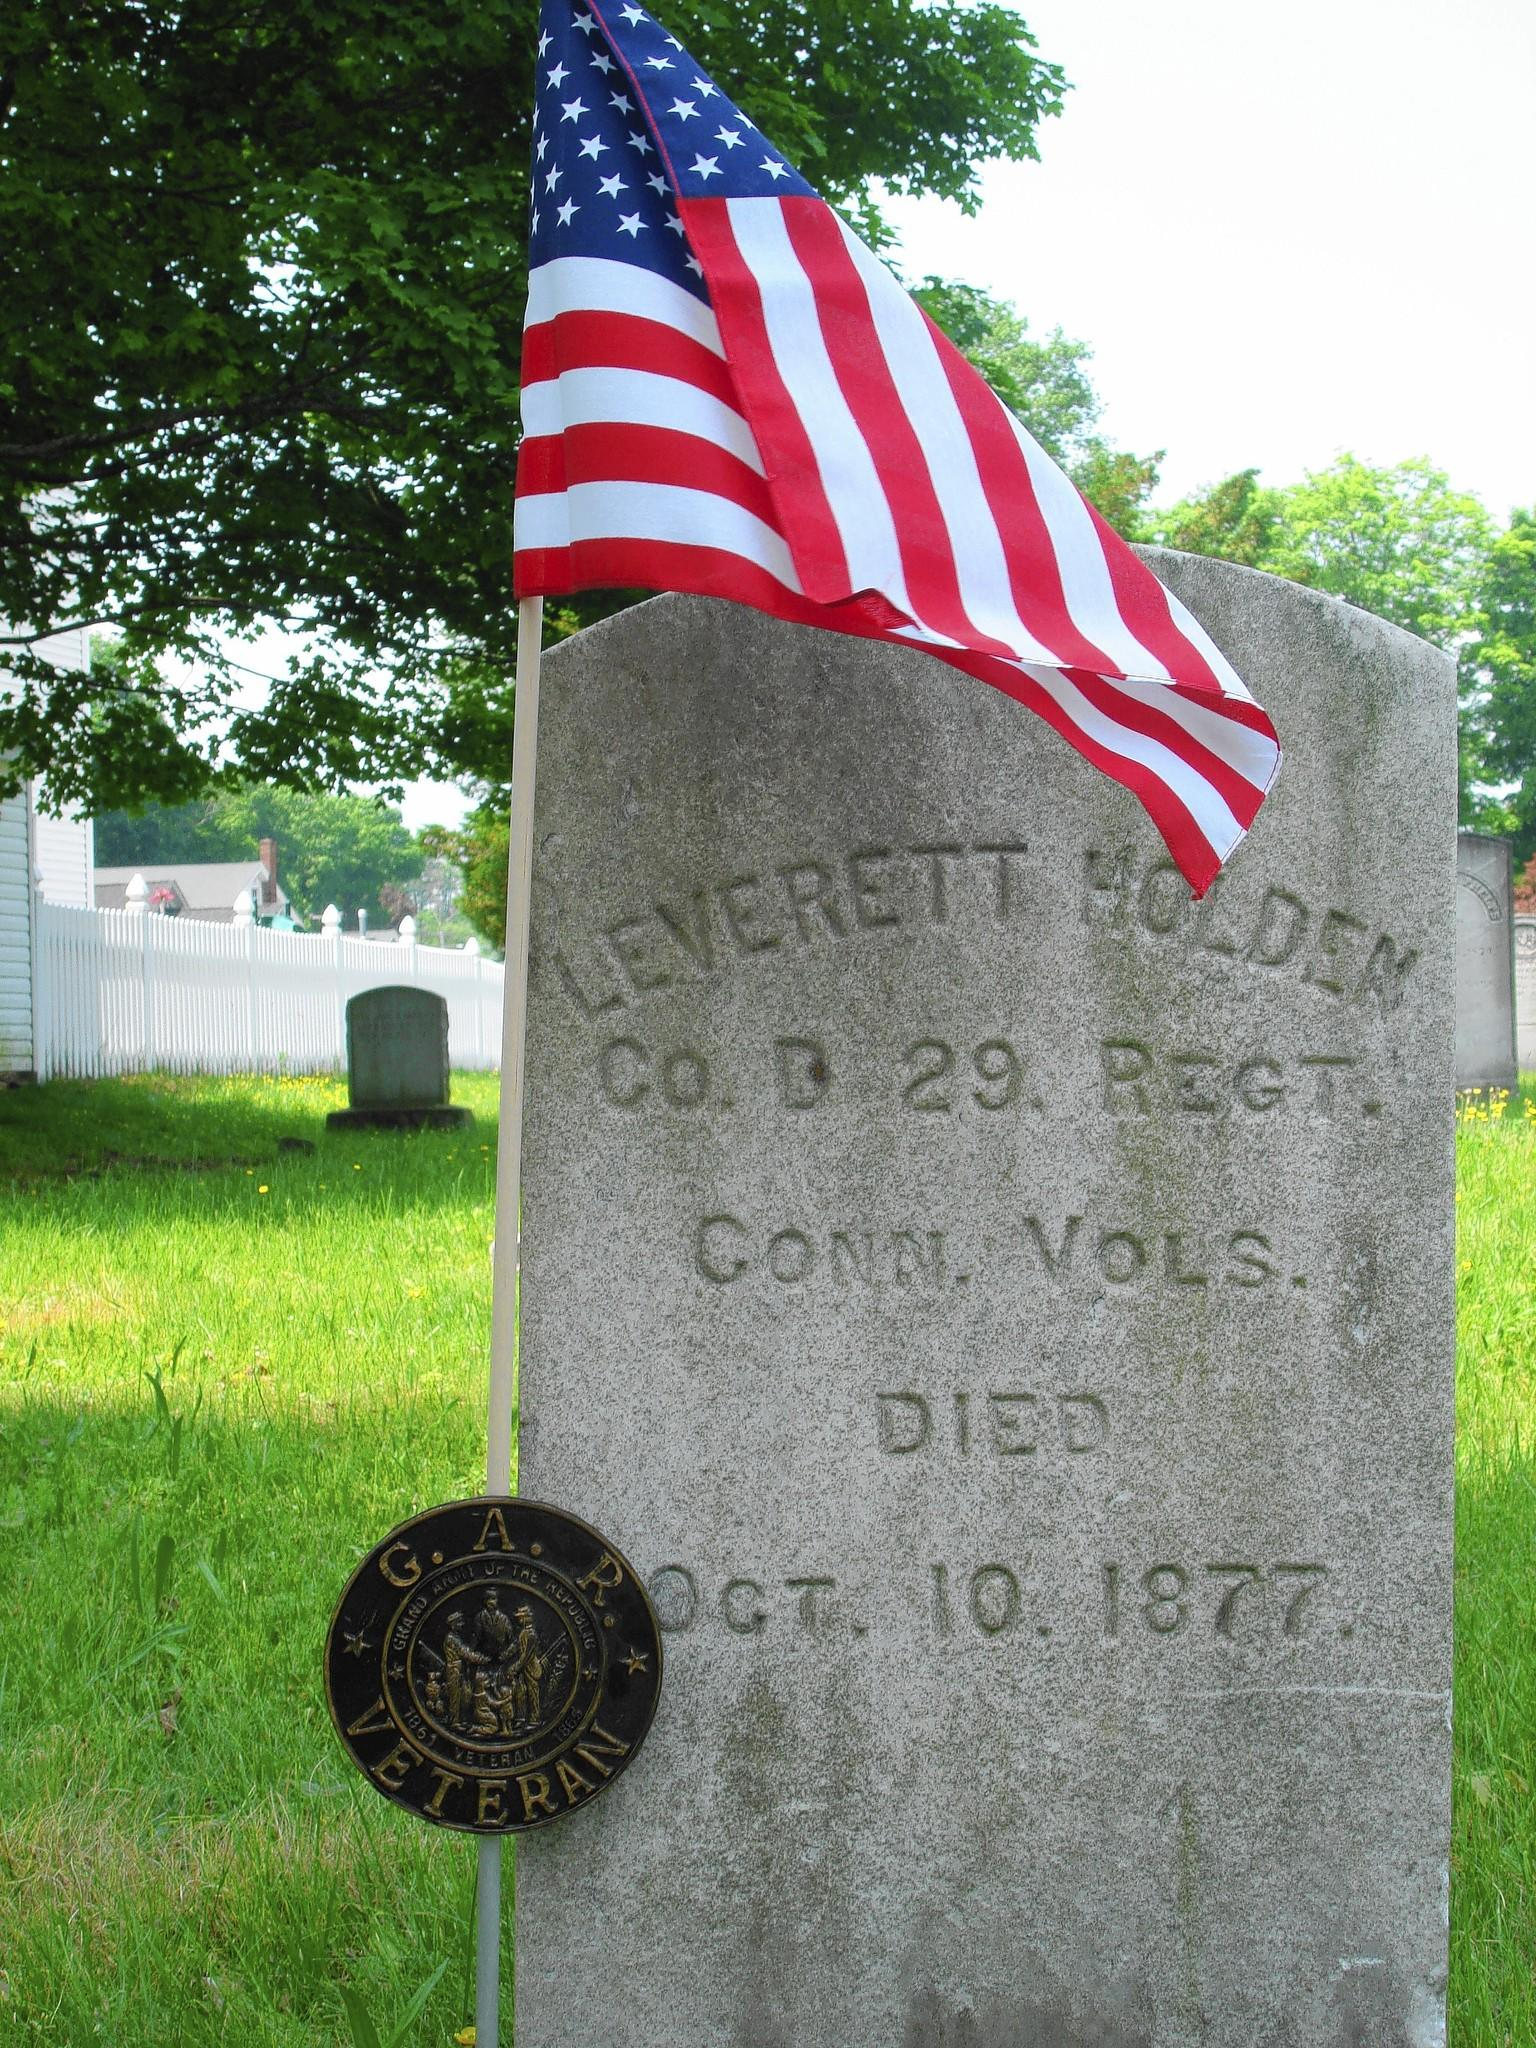 Grave of Leverett Holden, Civil War Soldier, East Avon Congregational Church